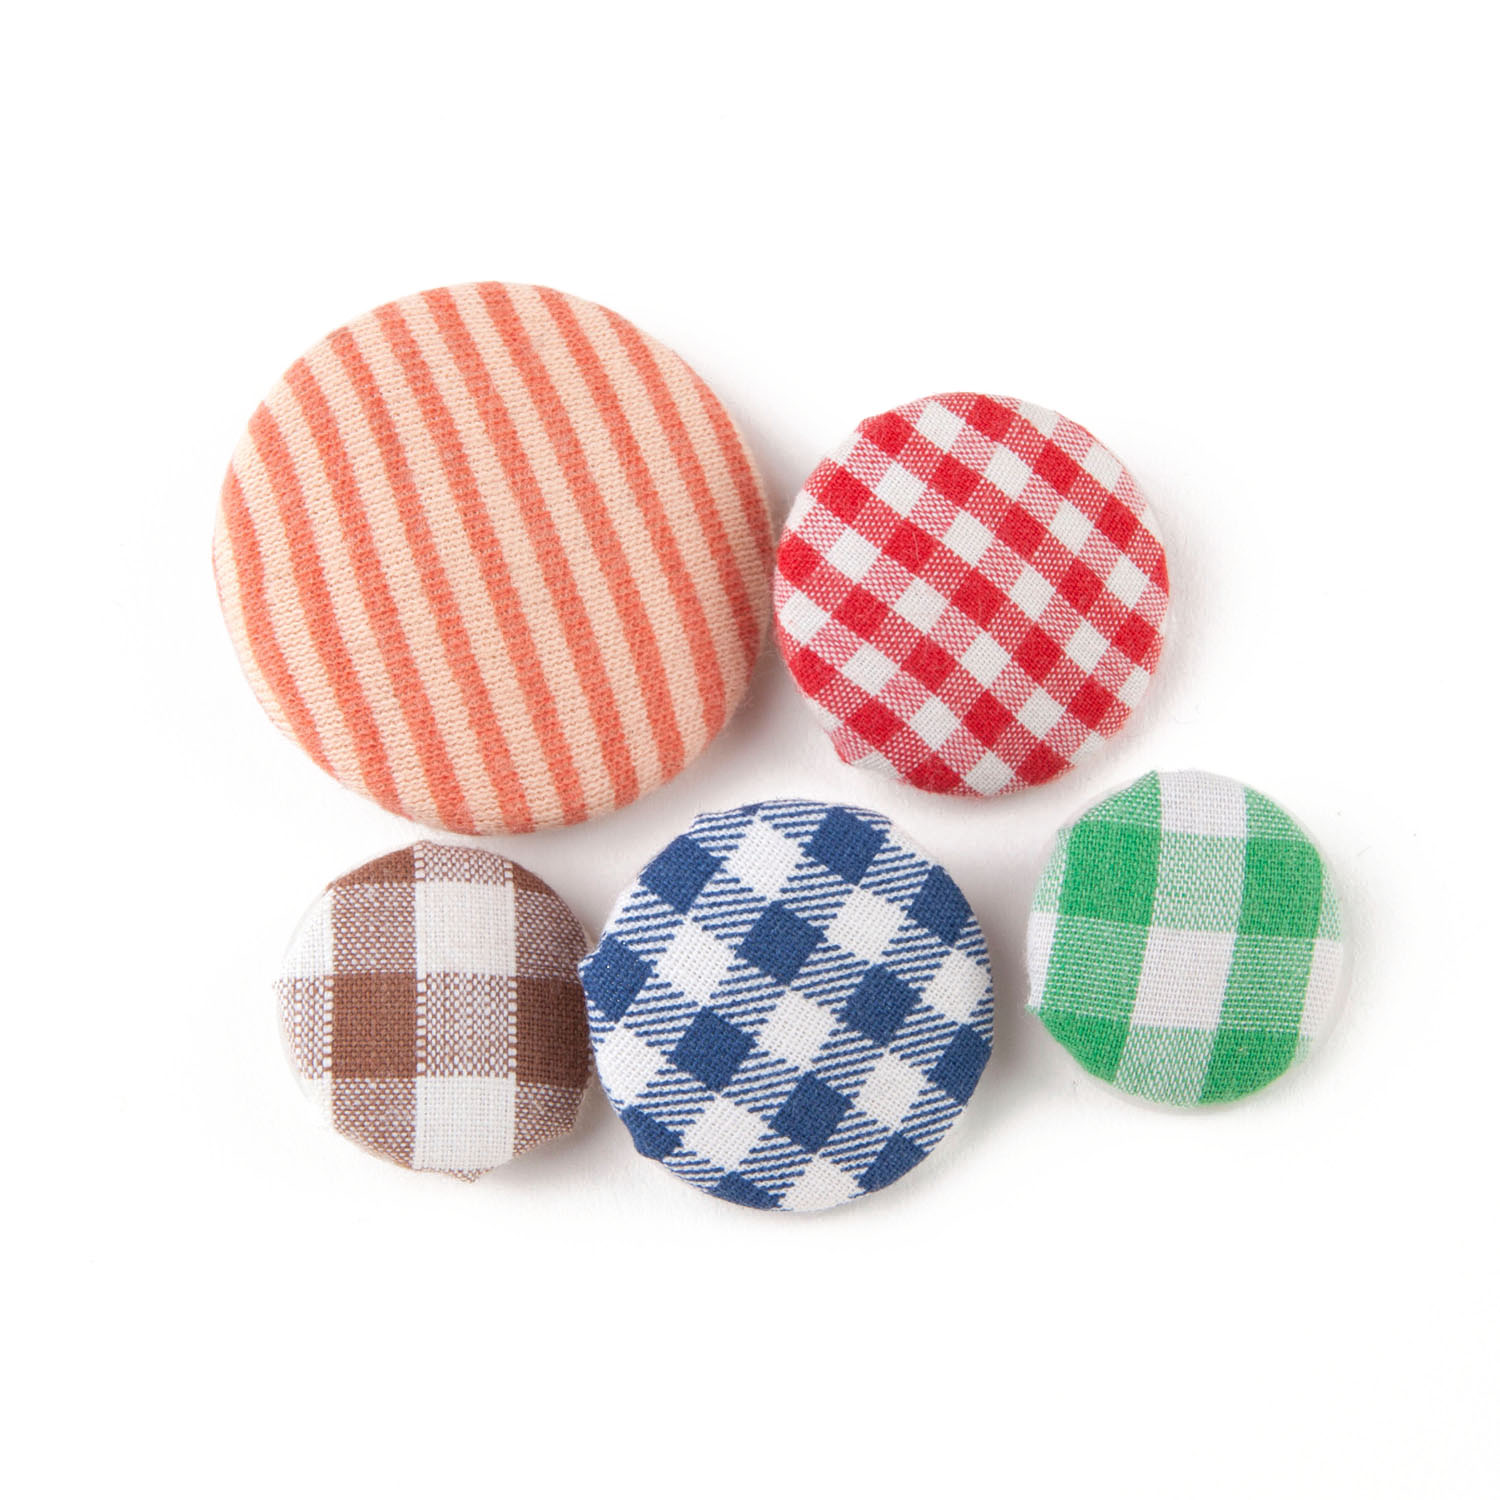 ©girlwithbeads_buttons_multi-coloured_gingham 1.jpg